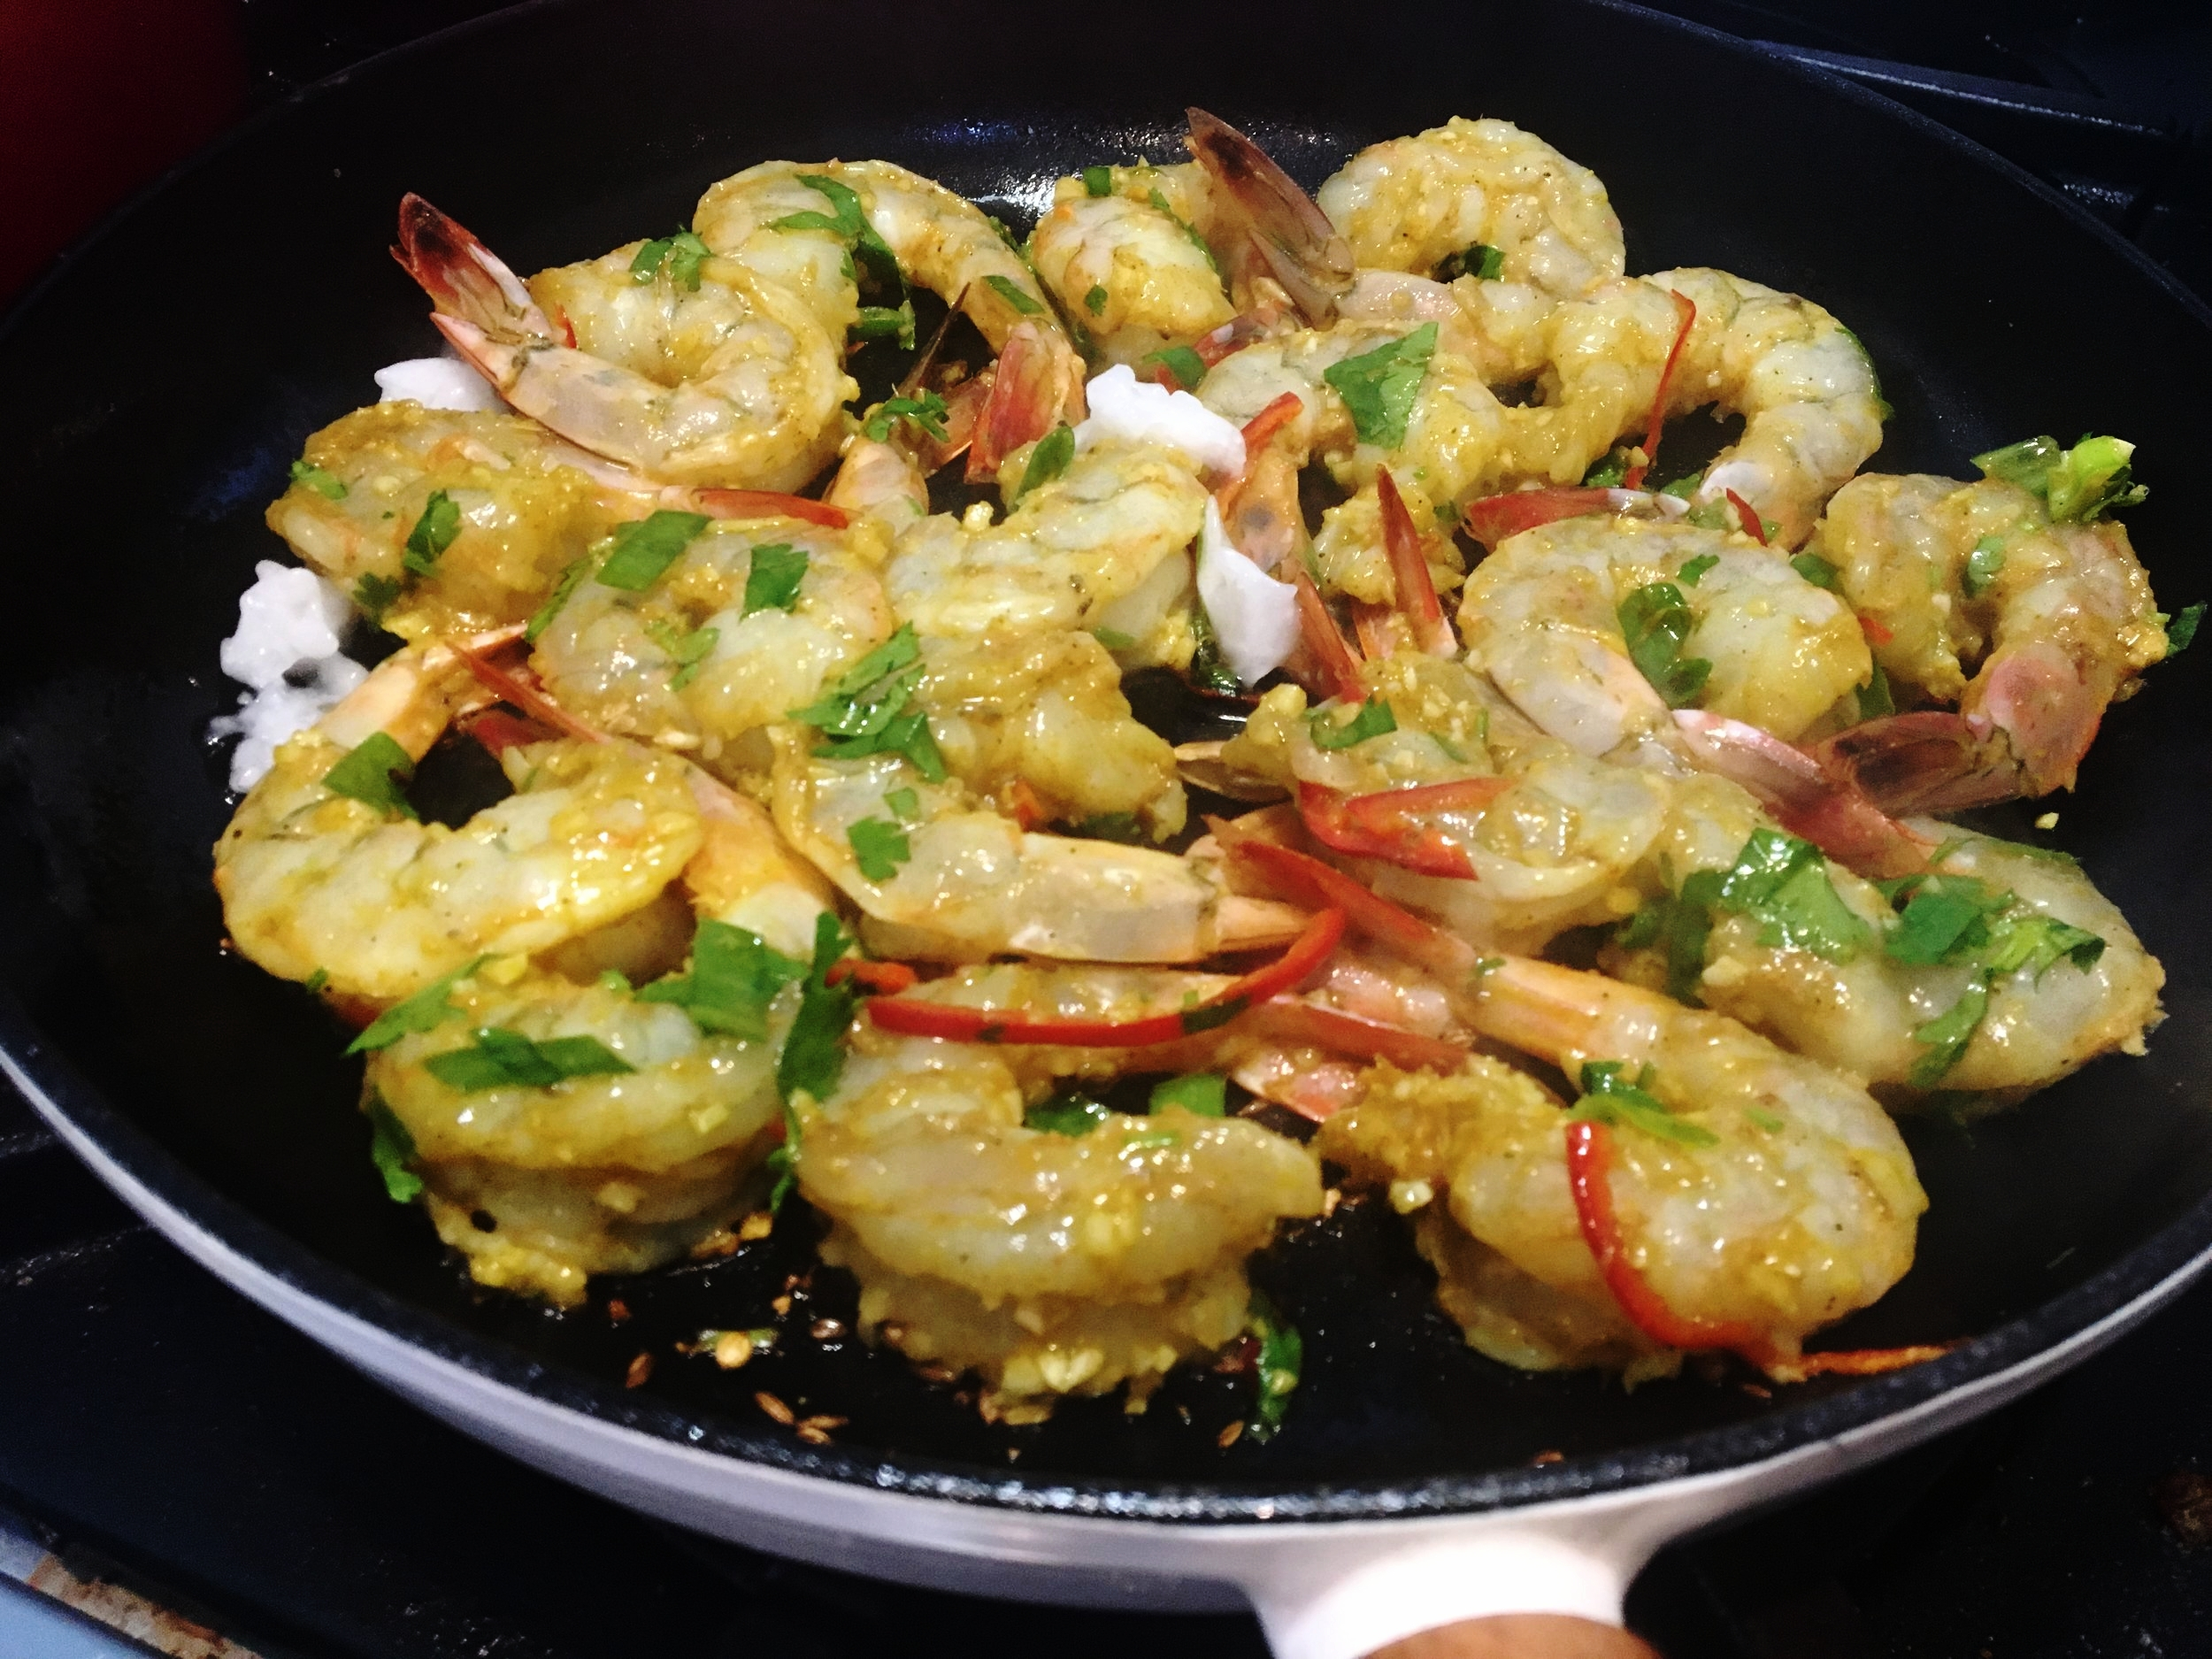 On a high heat.. - Sauteé shrimp quickly in vegetable oil, until they begin to turn opaque.